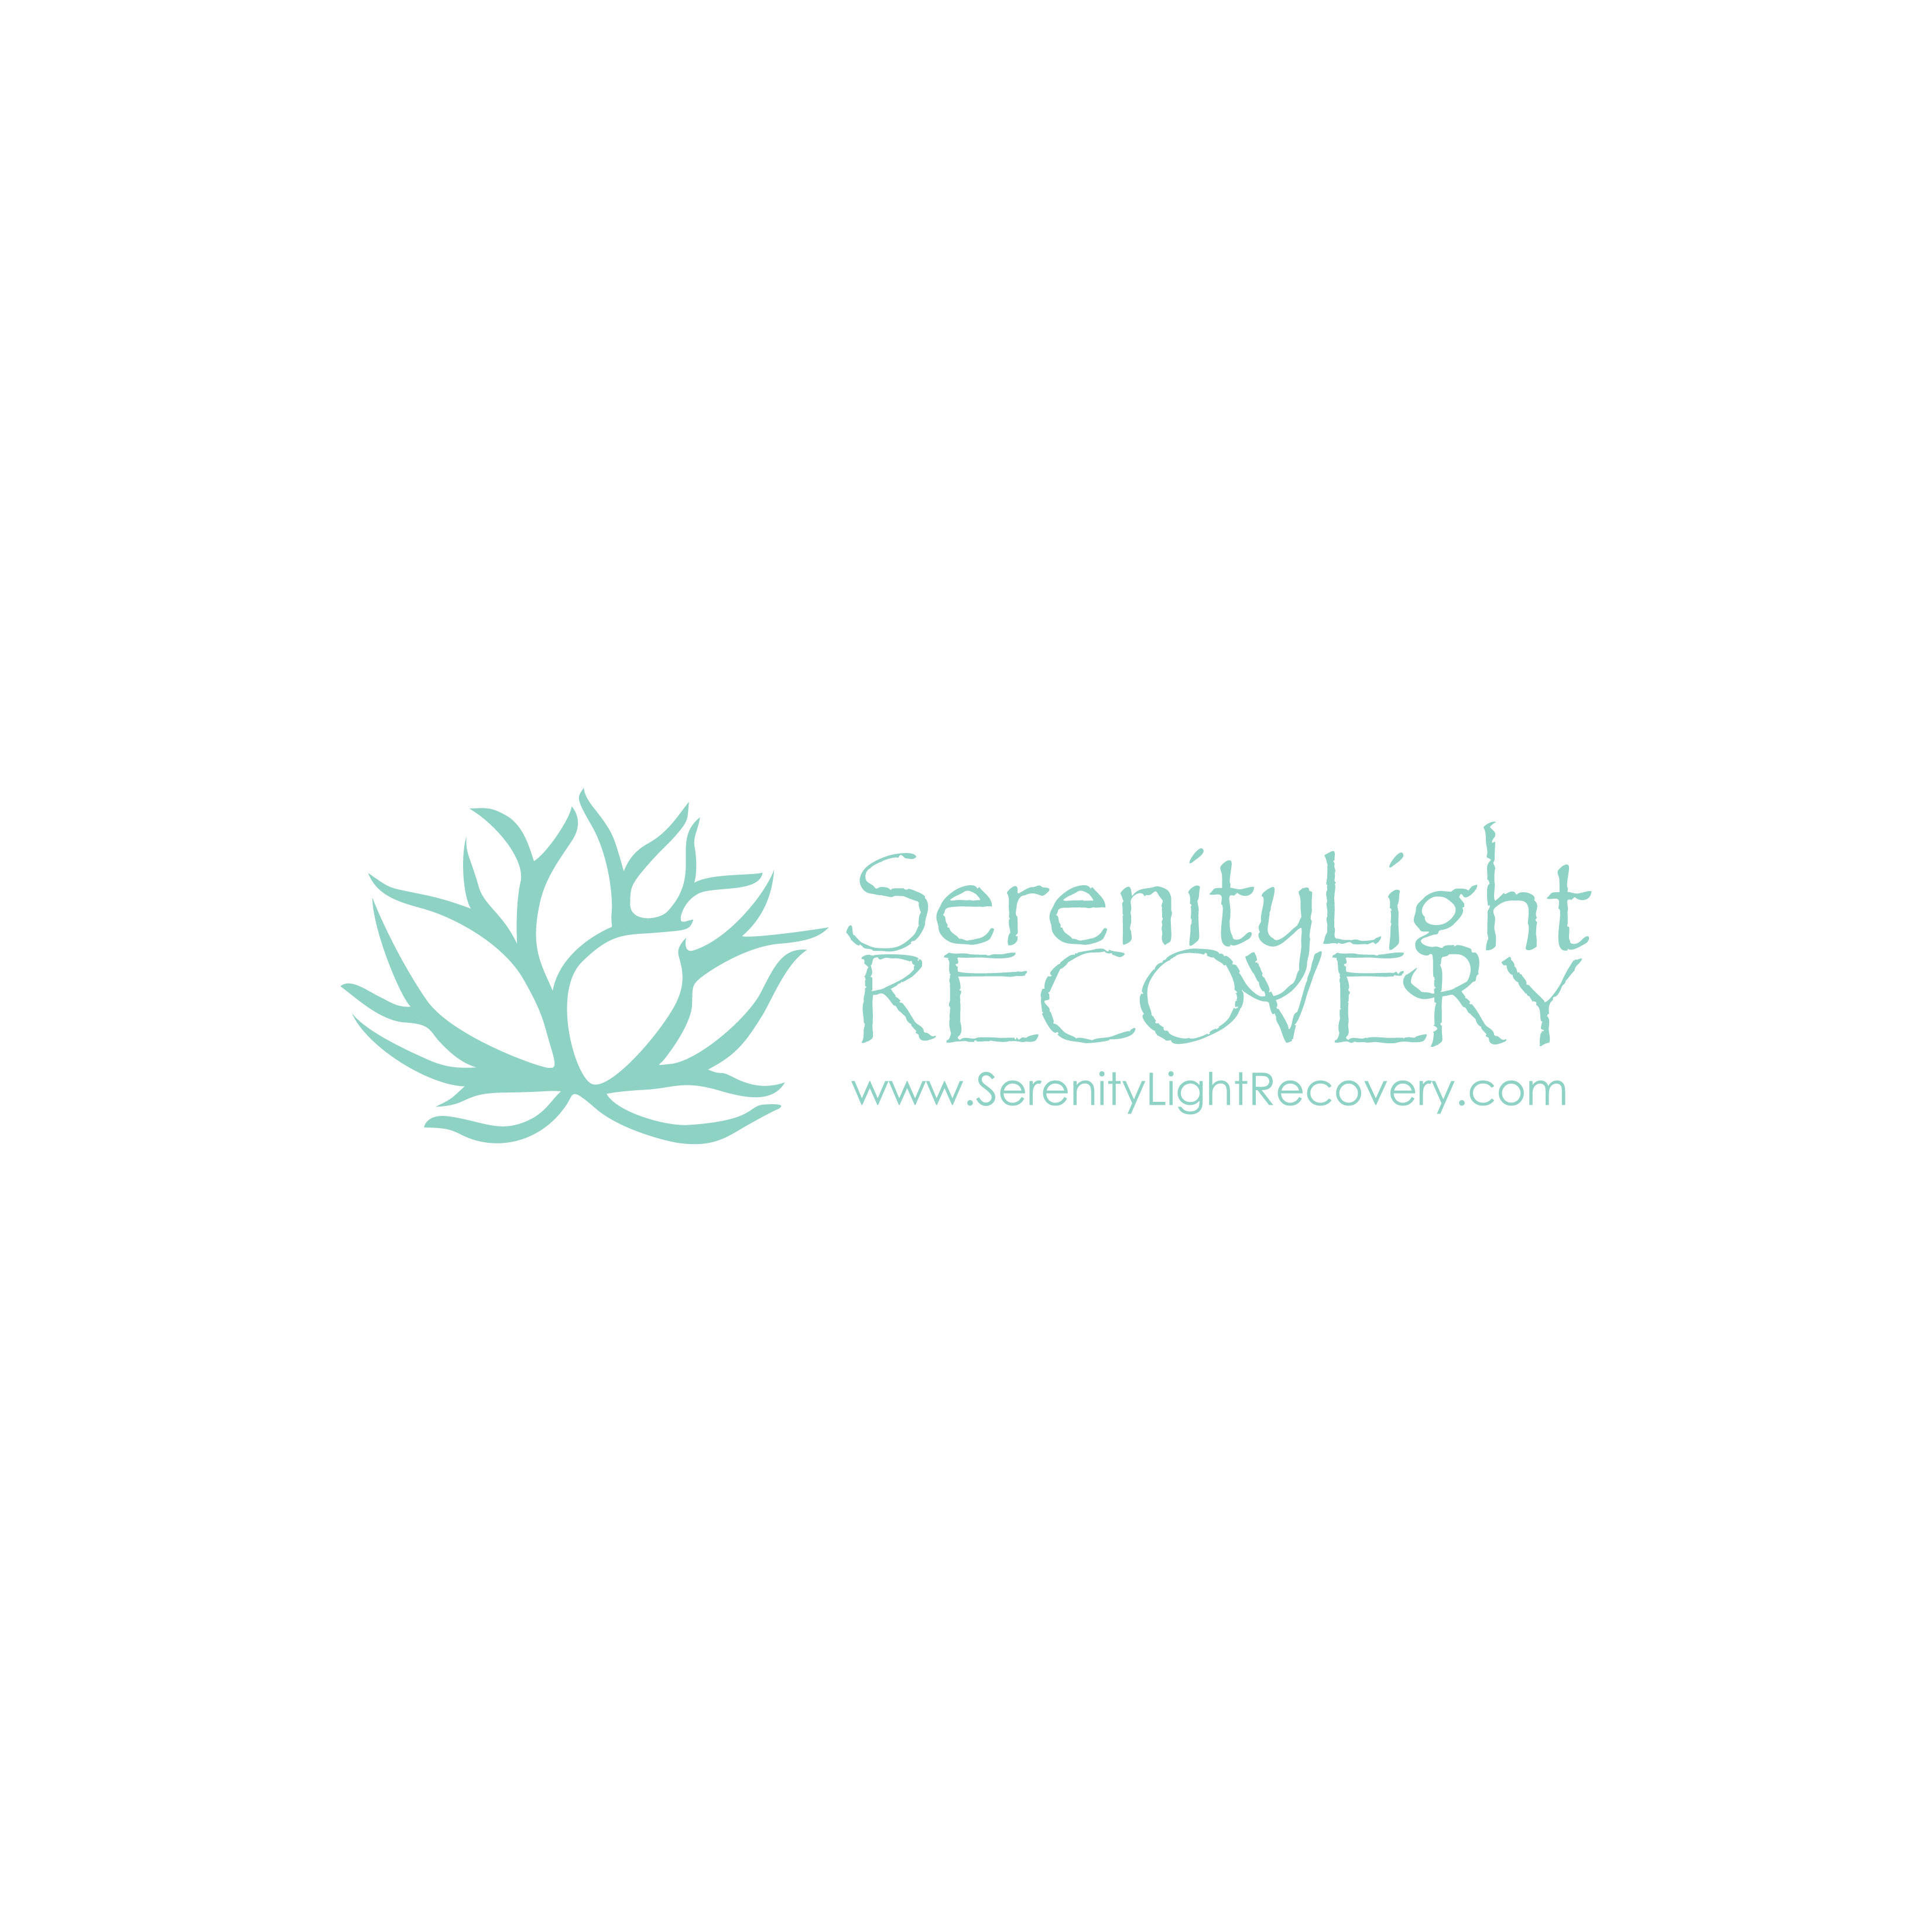 Serenity Light Recovery